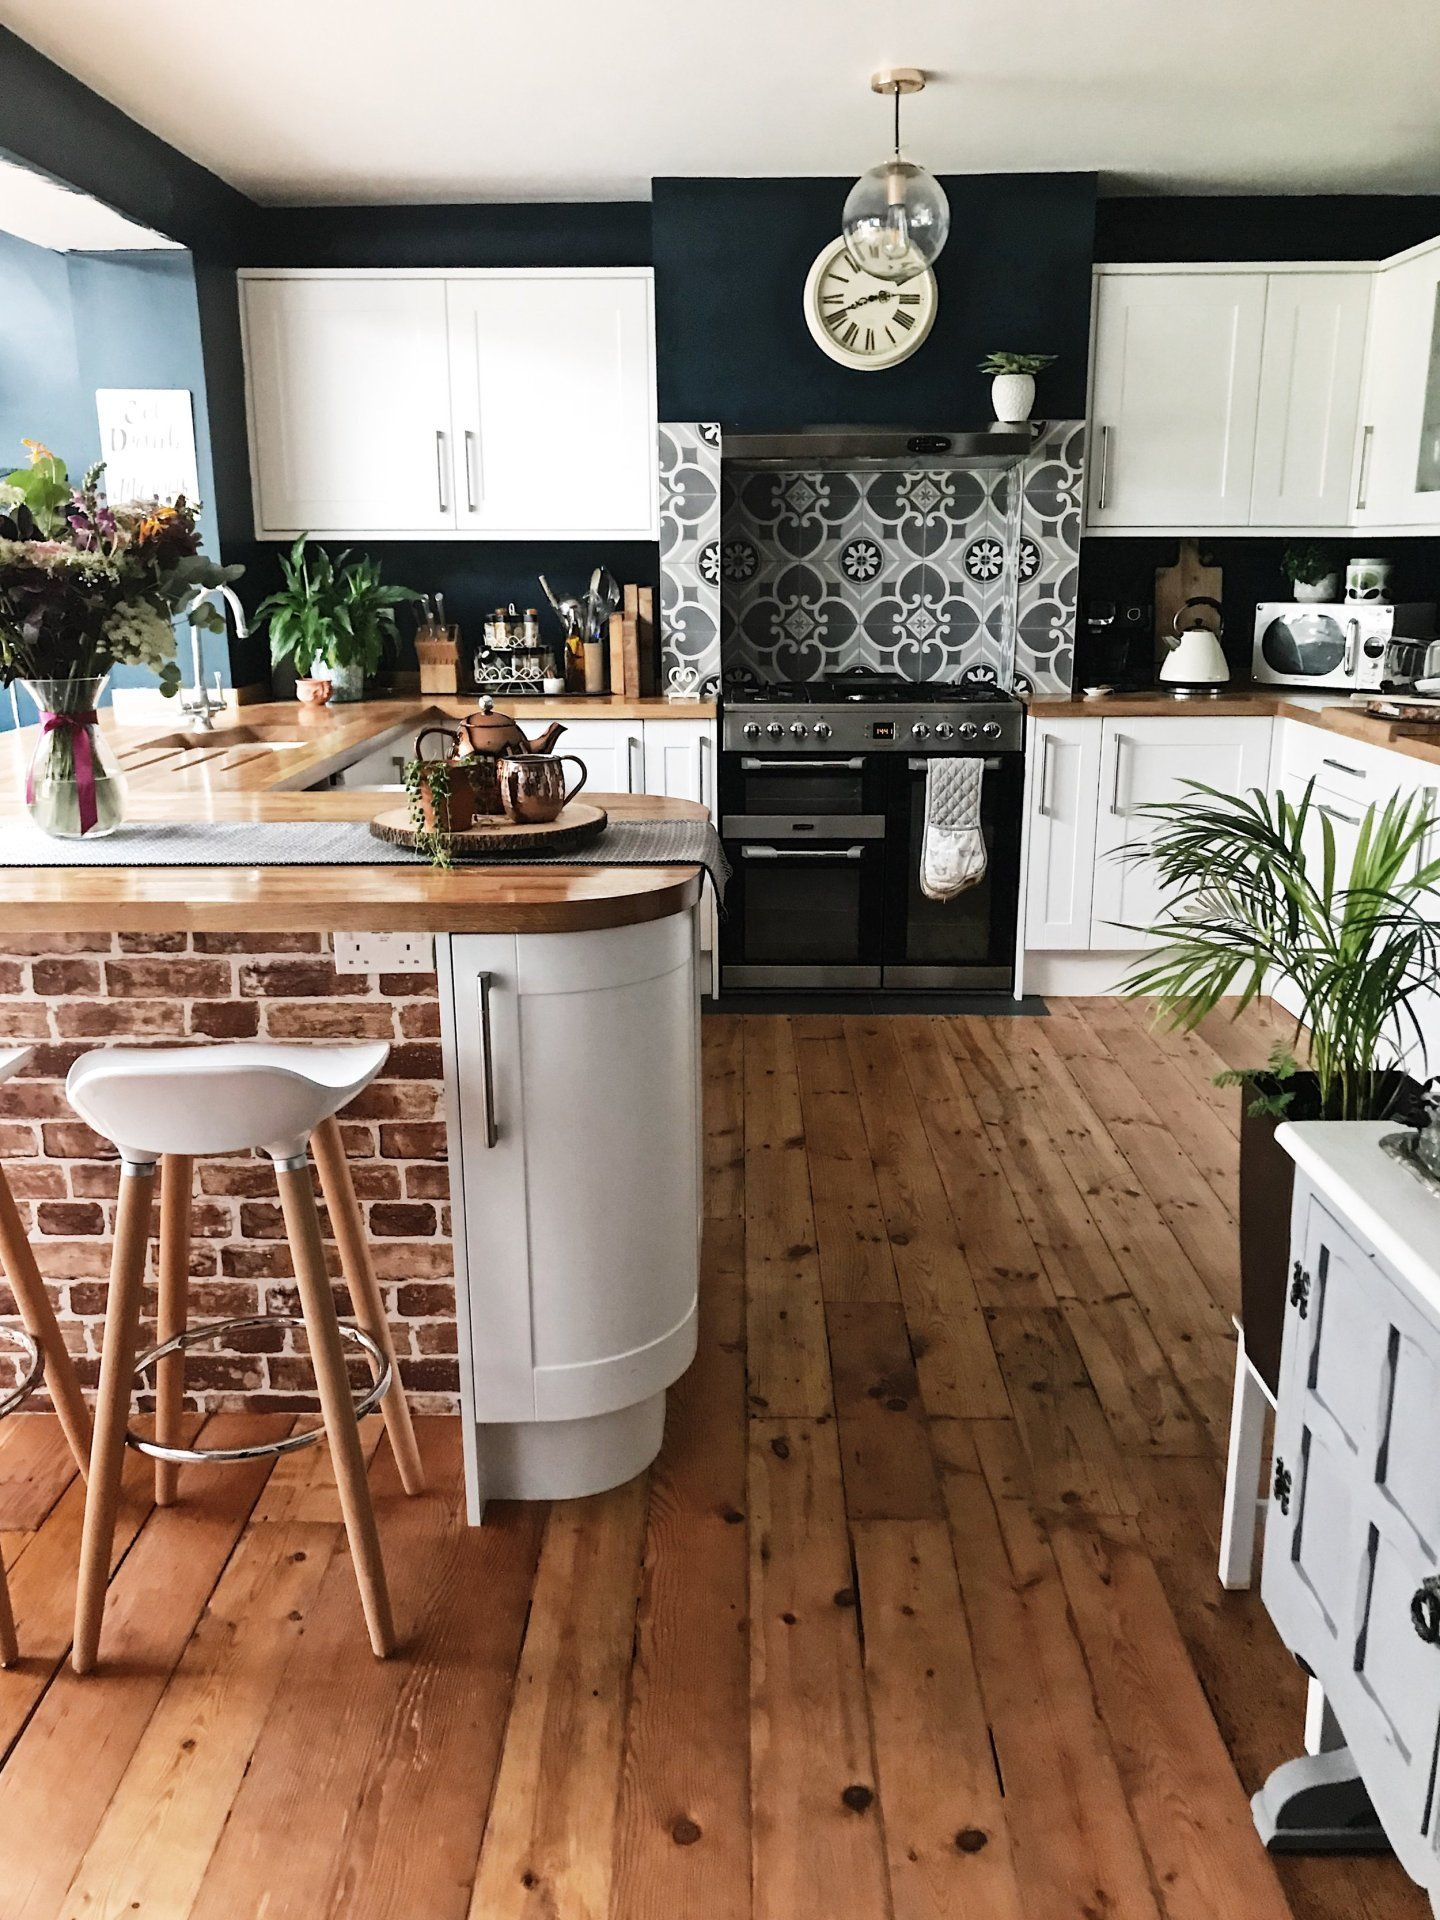 A Quick(ish) Kitchen Update - an Improved Look